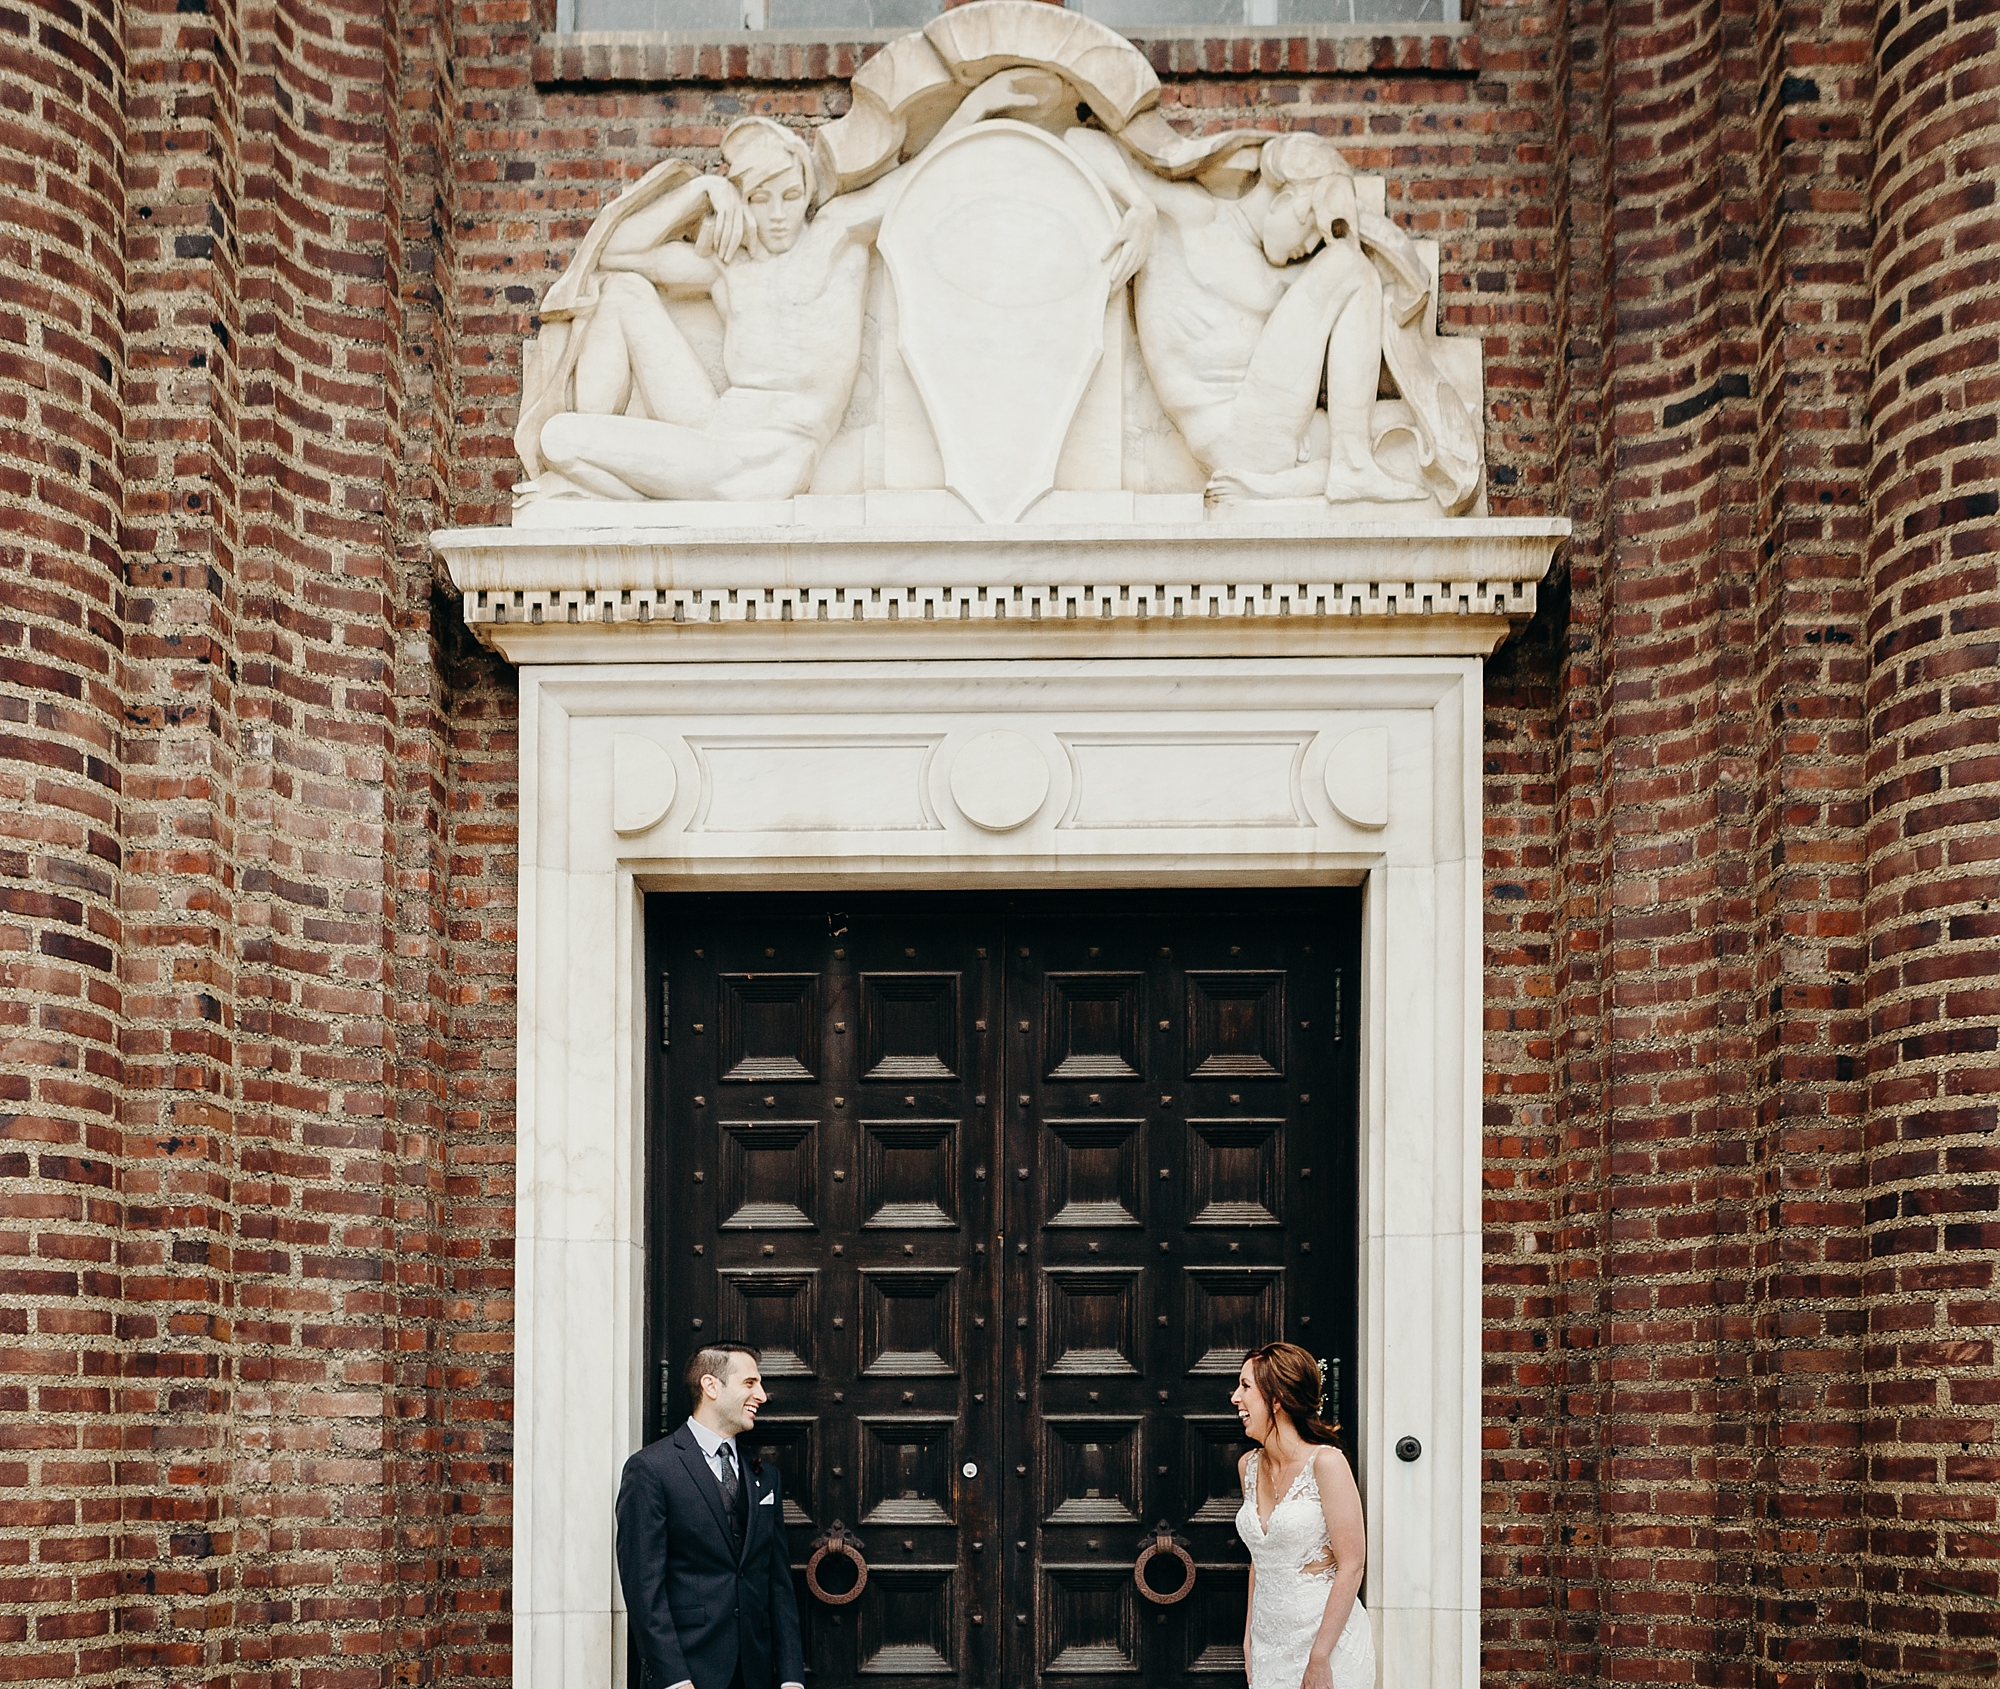 01_Love_by_Joe_Mac_Best_Wedding_Photography_Philadelphia_Penn_Museum_Univerity__0028.jpg